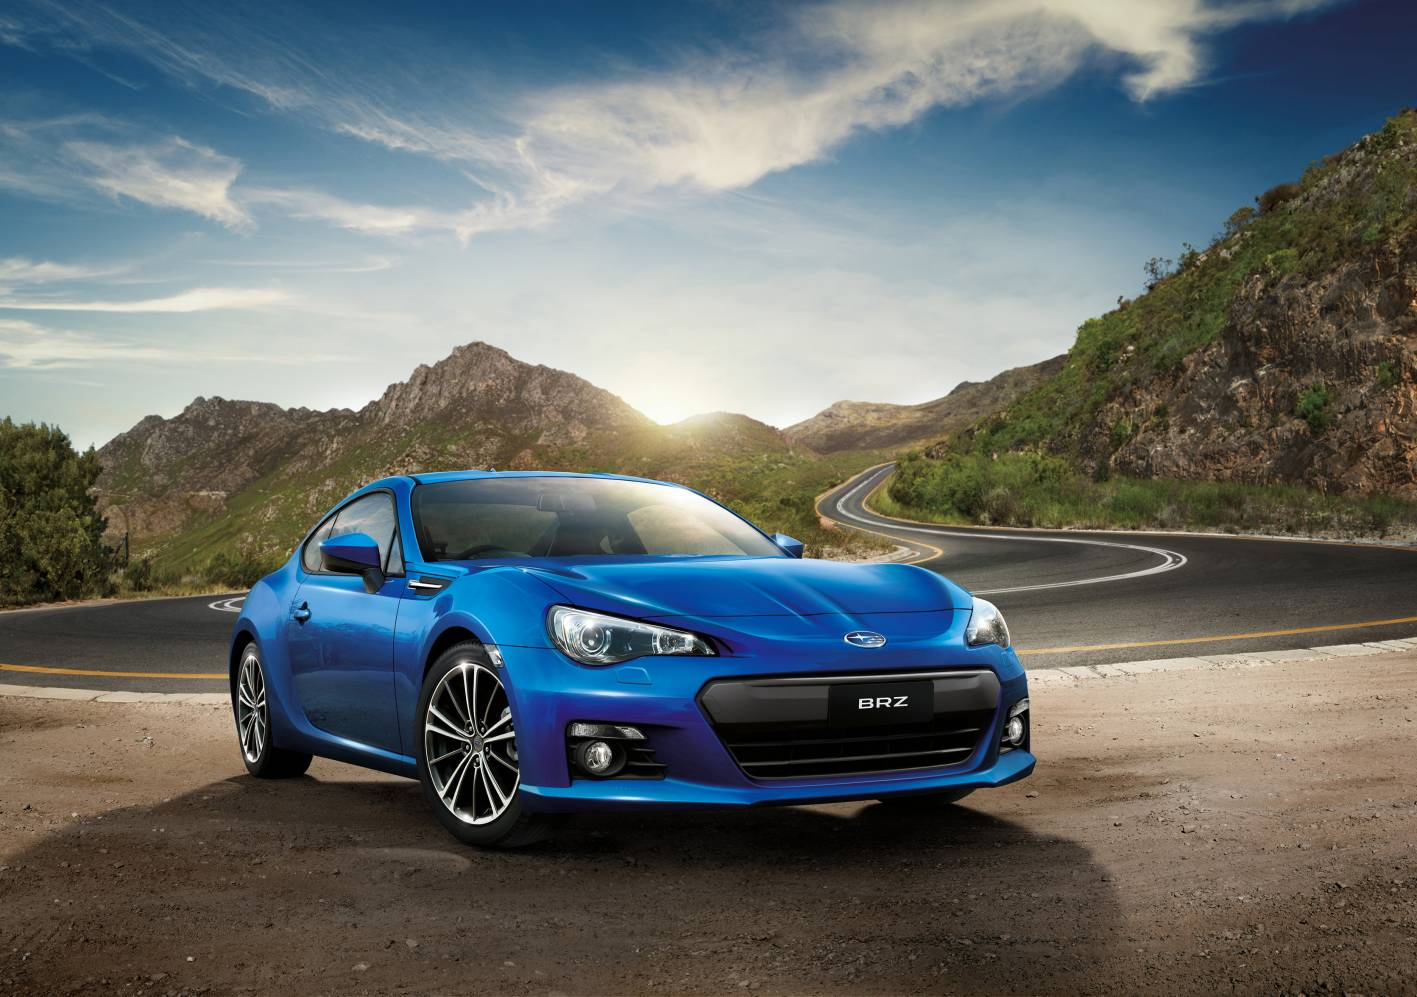 subaru brz revised with suspension and styling tweaks for 2015. Black Bedroom Furniture Sets. Home Design Ideas